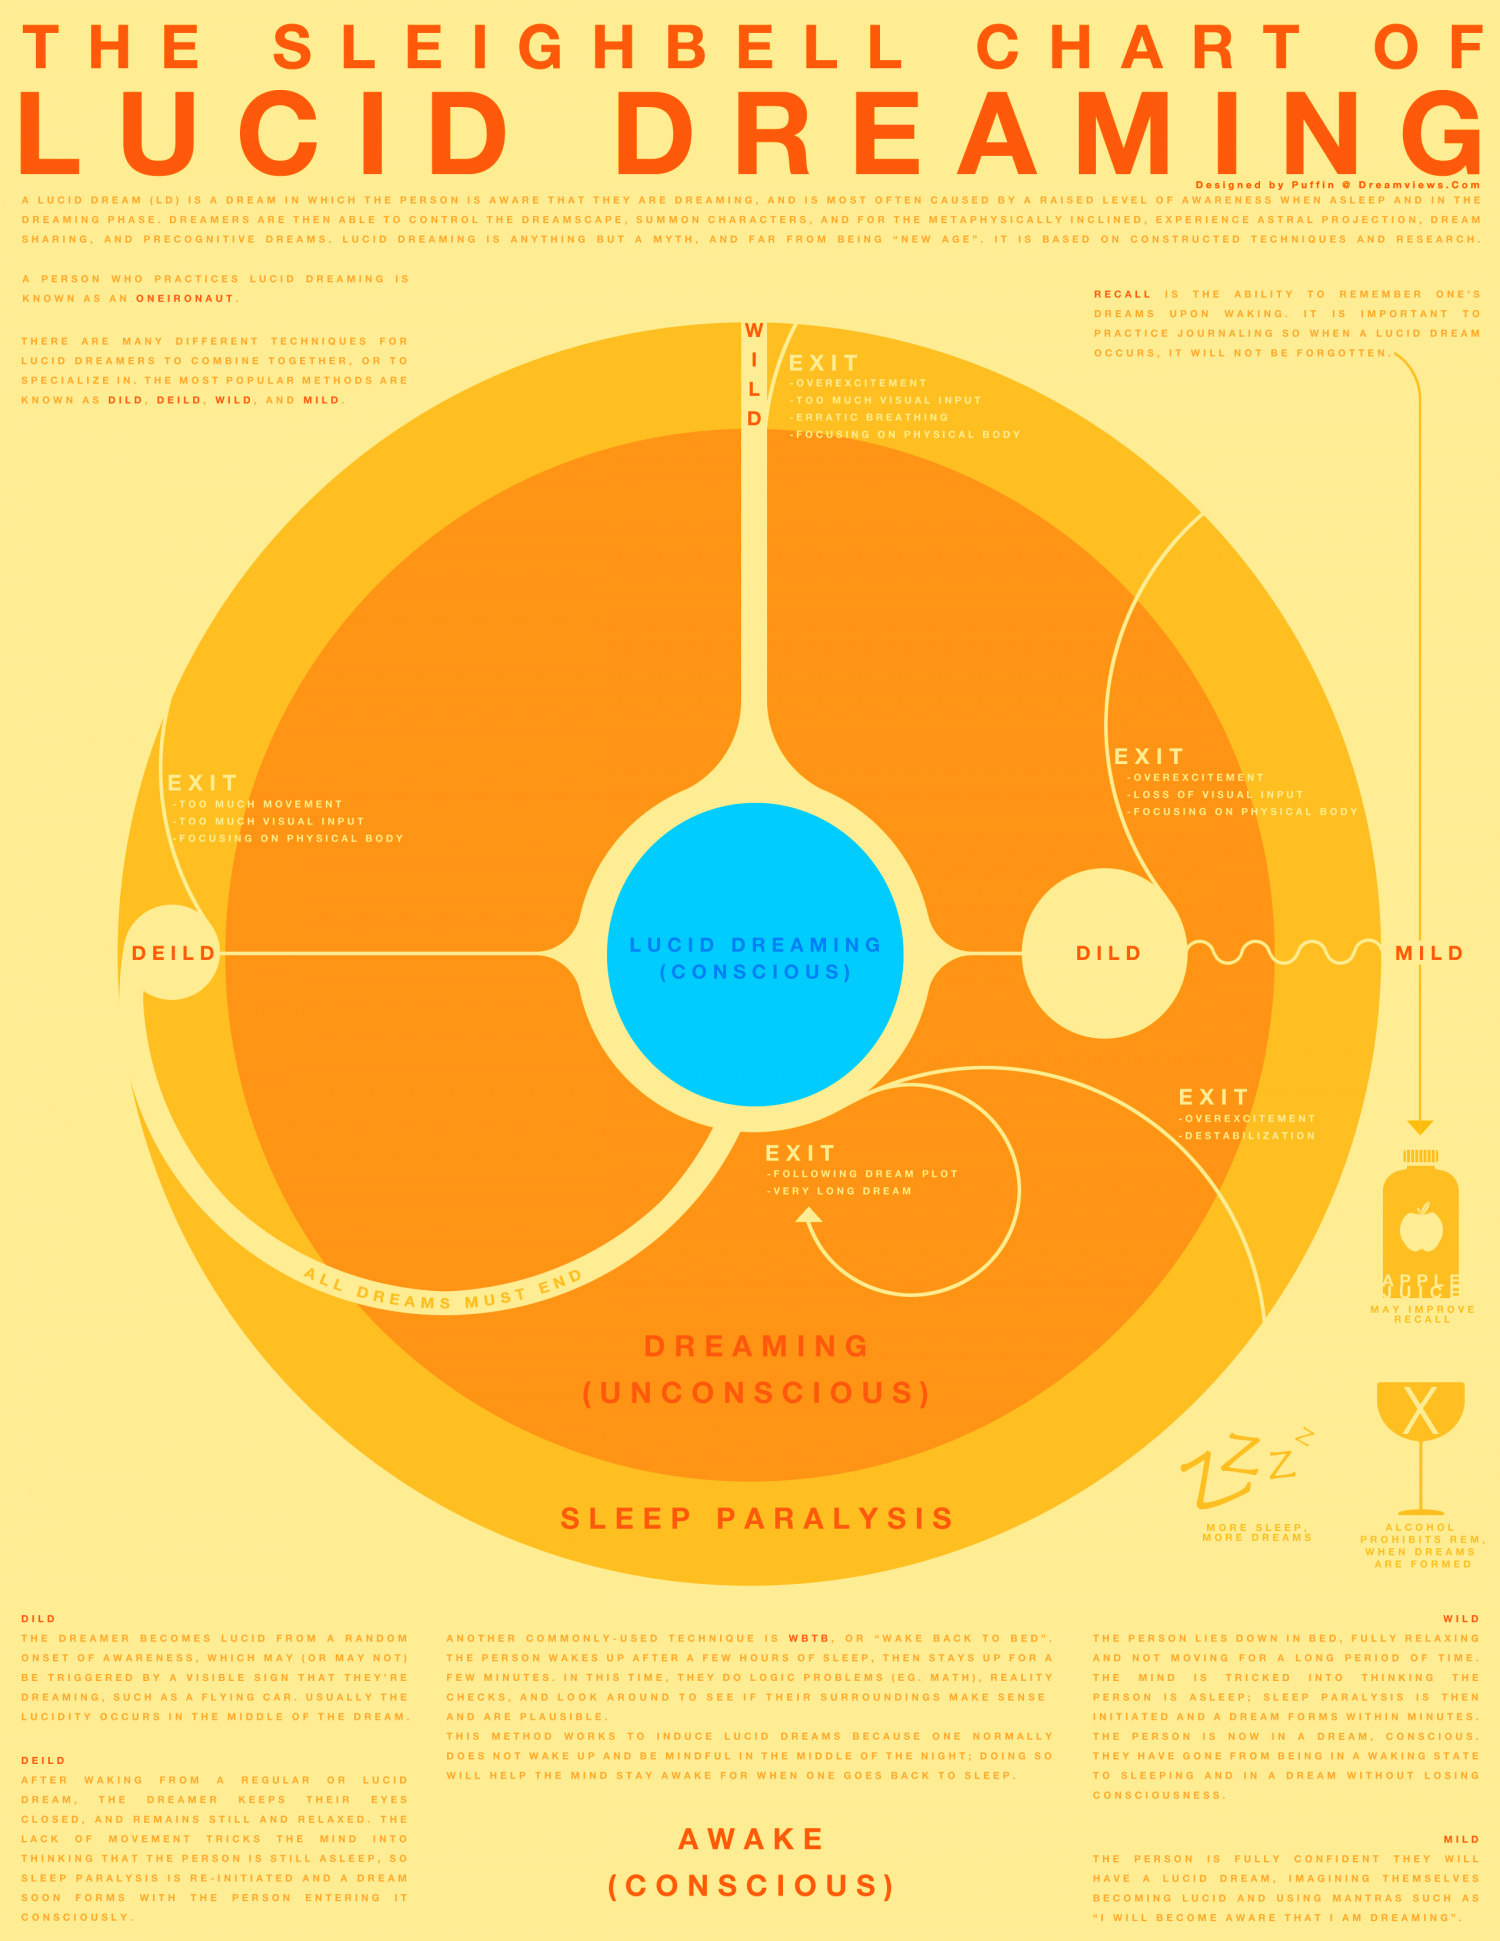 The Sleighbell Chart of Lucid Dreaming | Visual ly